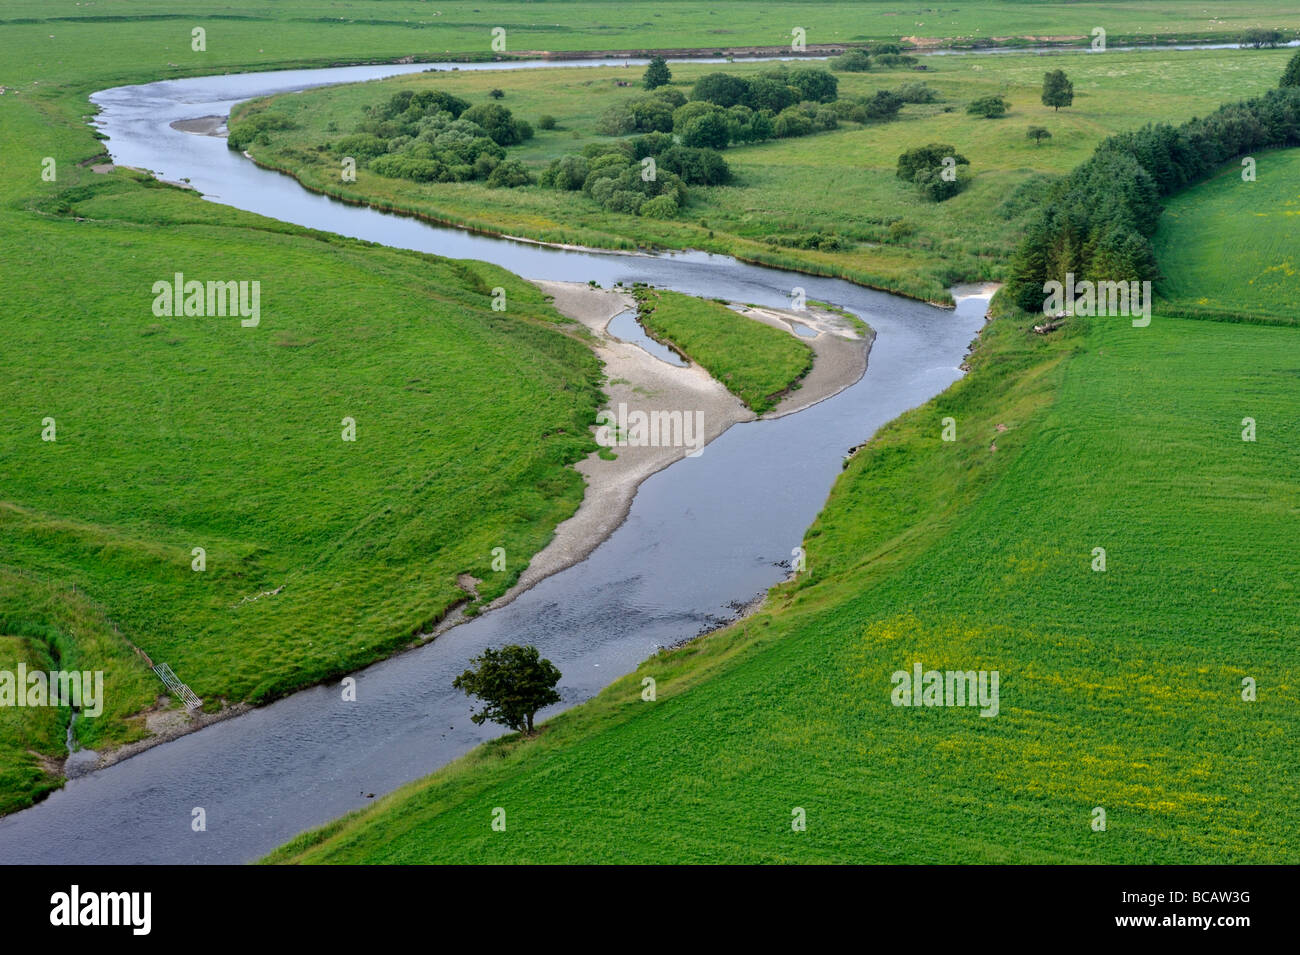 Aerial view of River Clyde, near Symington, South Lanarkshire, Scotland, United Kingdom, Europe. - Stock Image